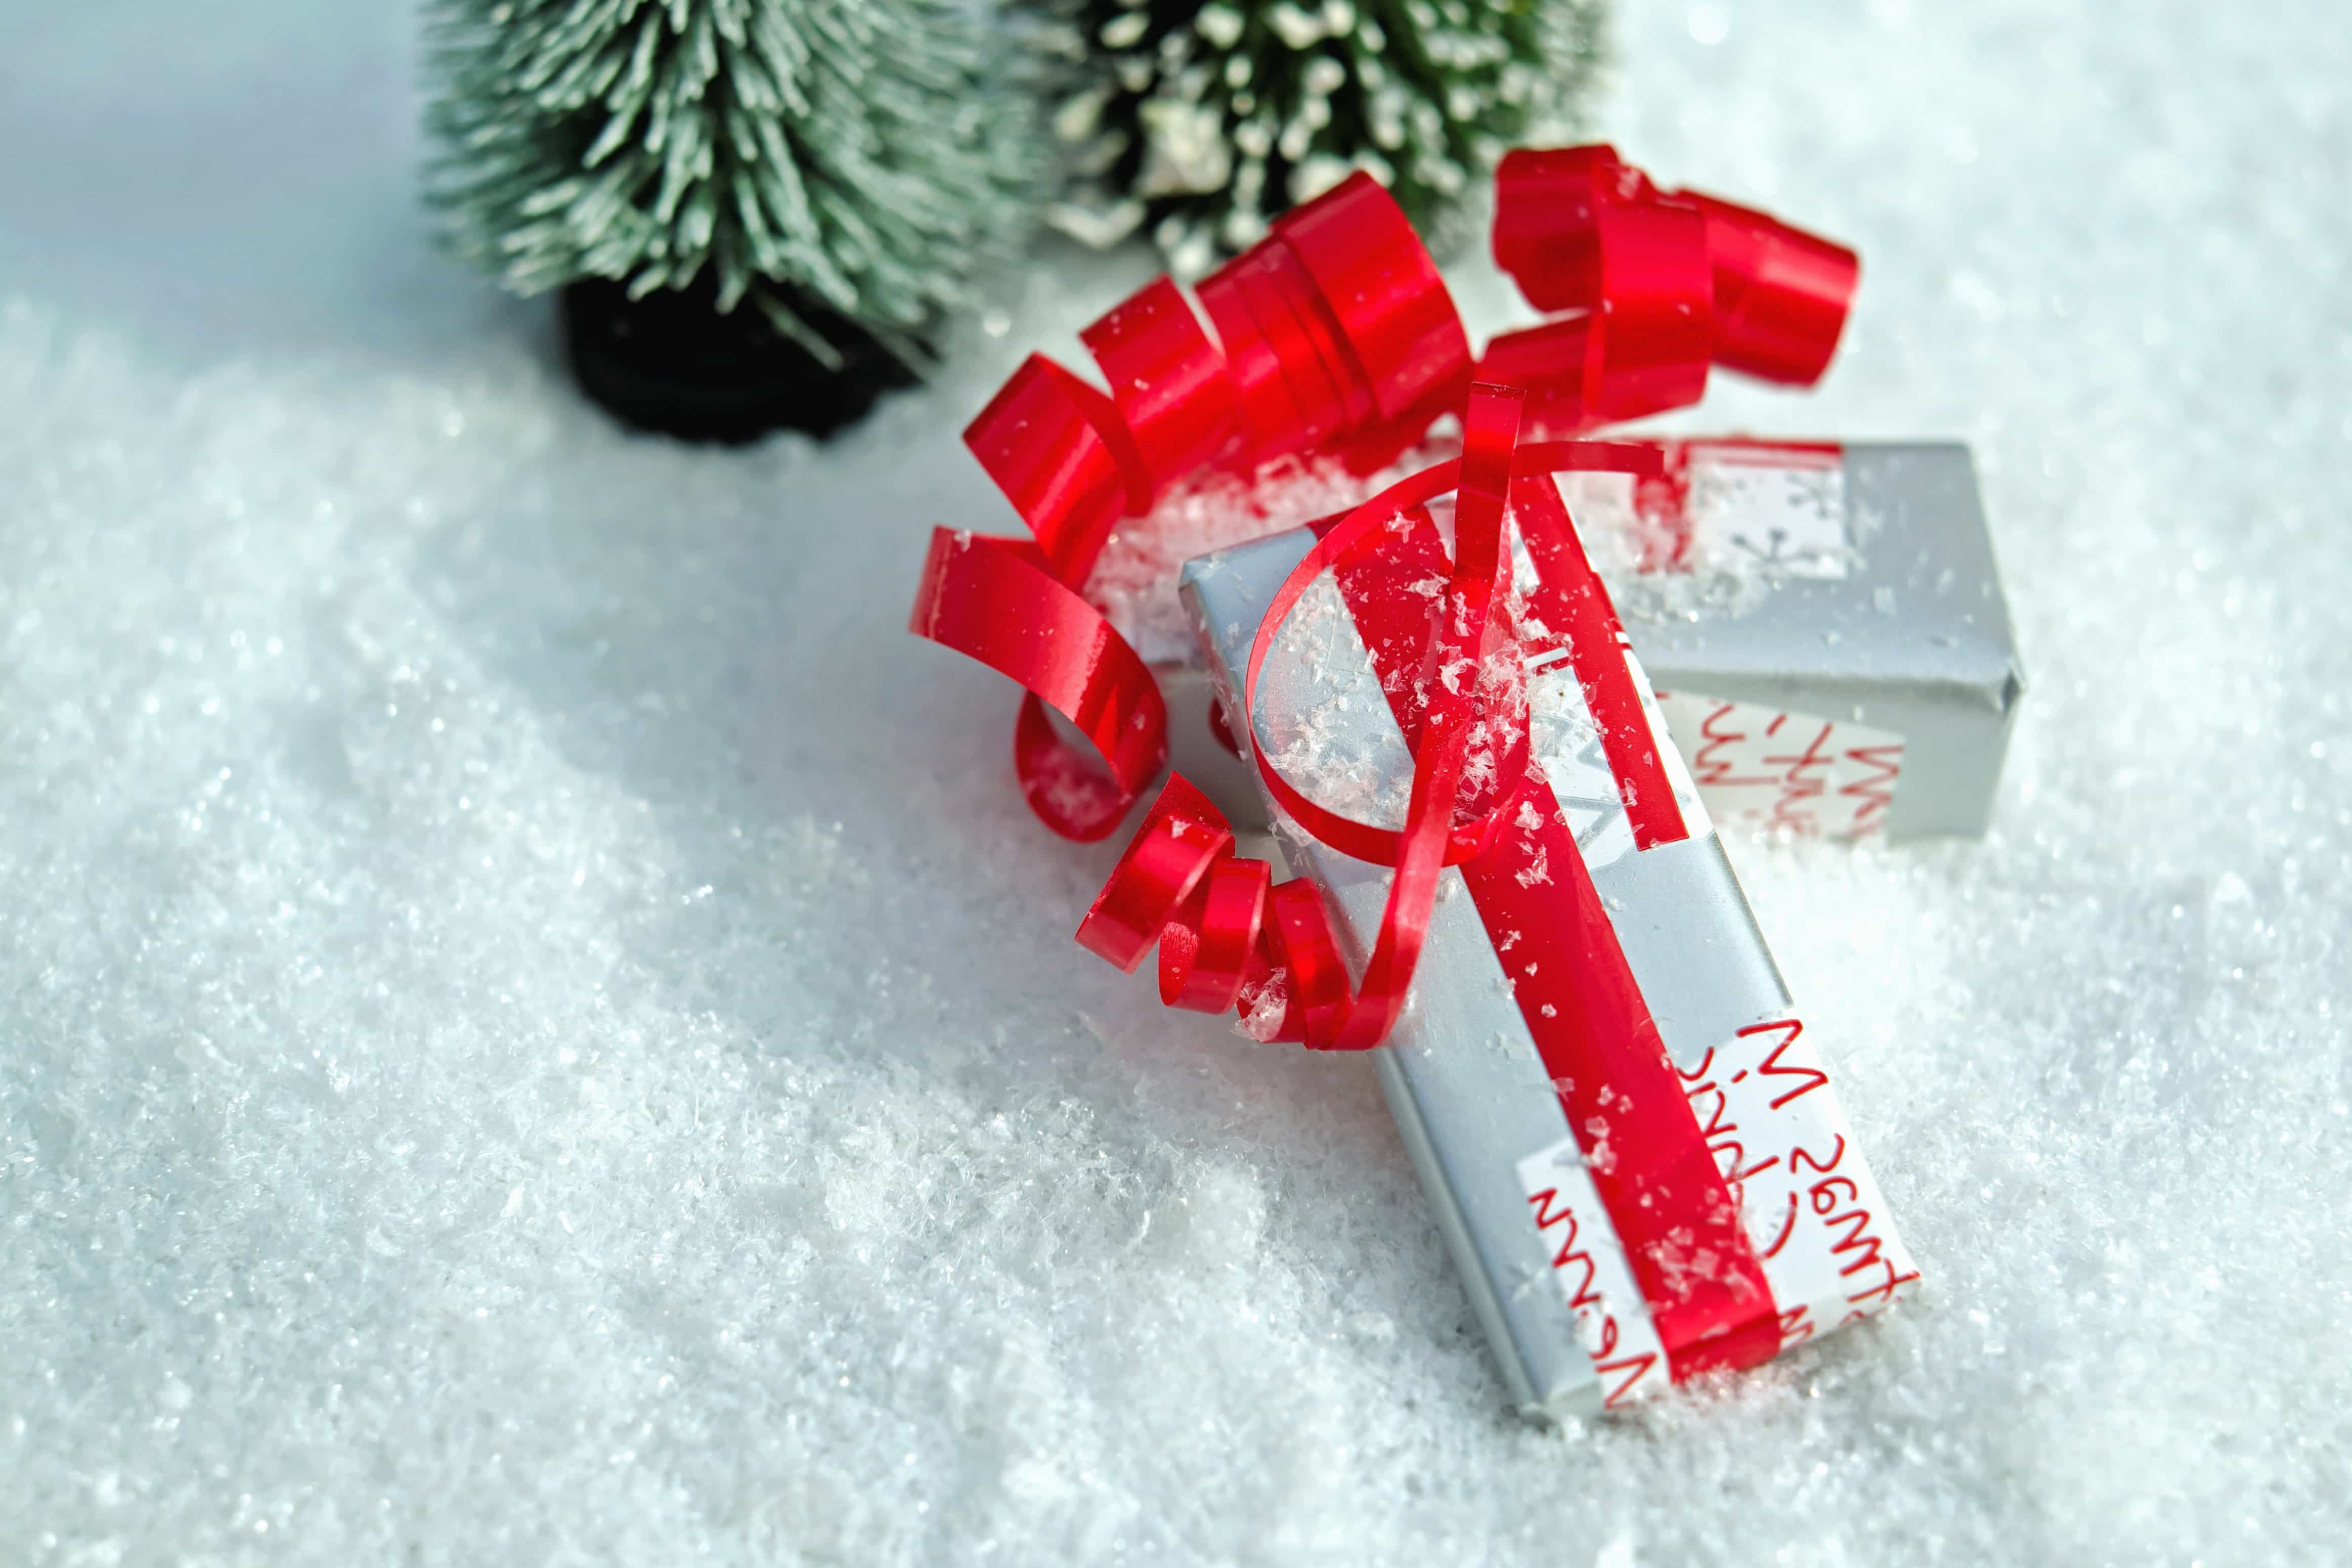 Free picture: surprise, tape, gift, snow, winter, Christmas, snowflake